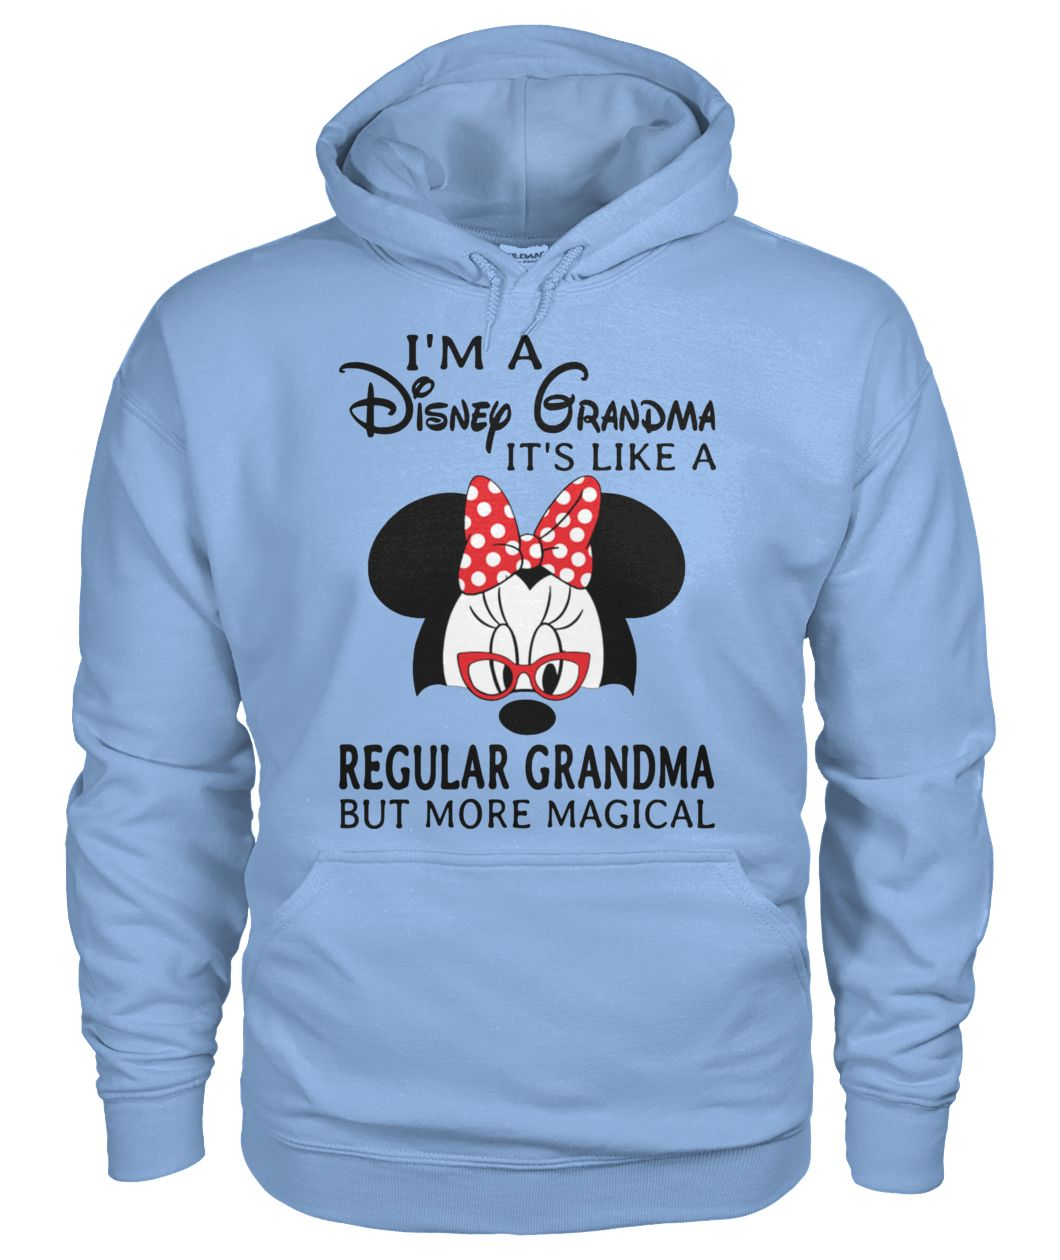 I'm a disney grandma it's like a regular grandma but more magical gildan hoodie